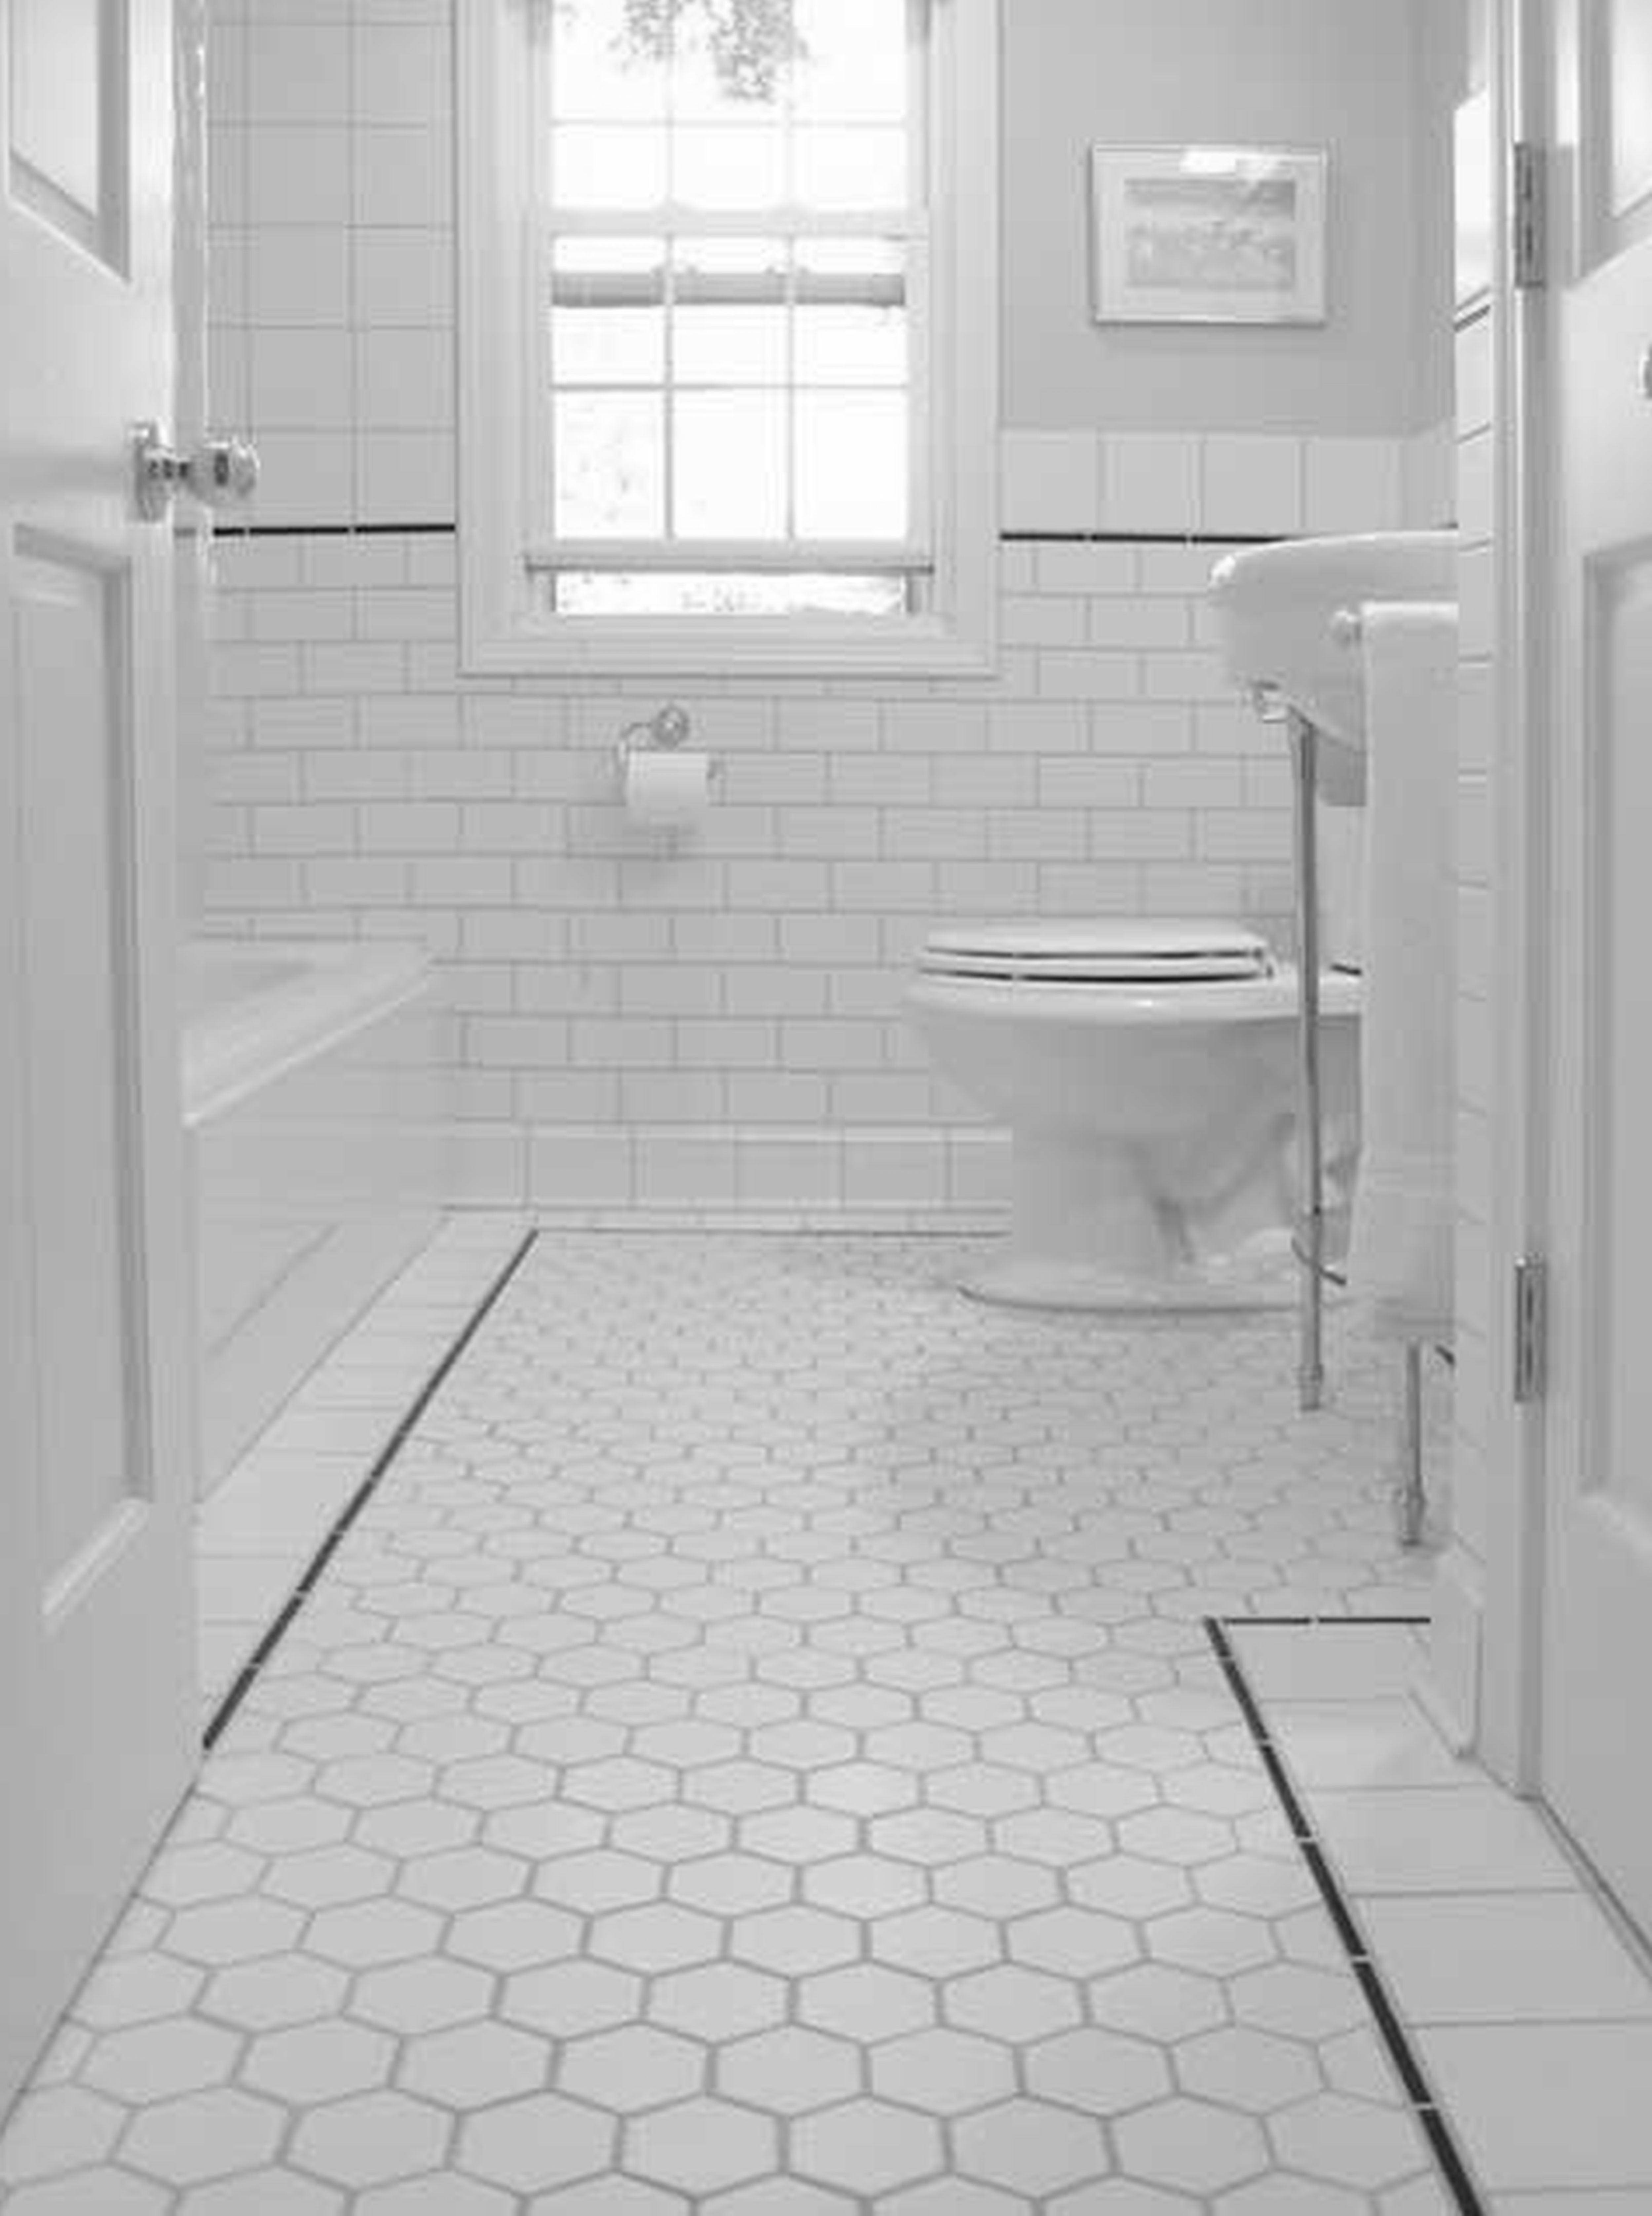 30 Amazing Ideas And Pictures Of Antique Bathroom Tiles Small Bathroom Tiles Small Bathroom Renovations Vintage Bathroom Tile